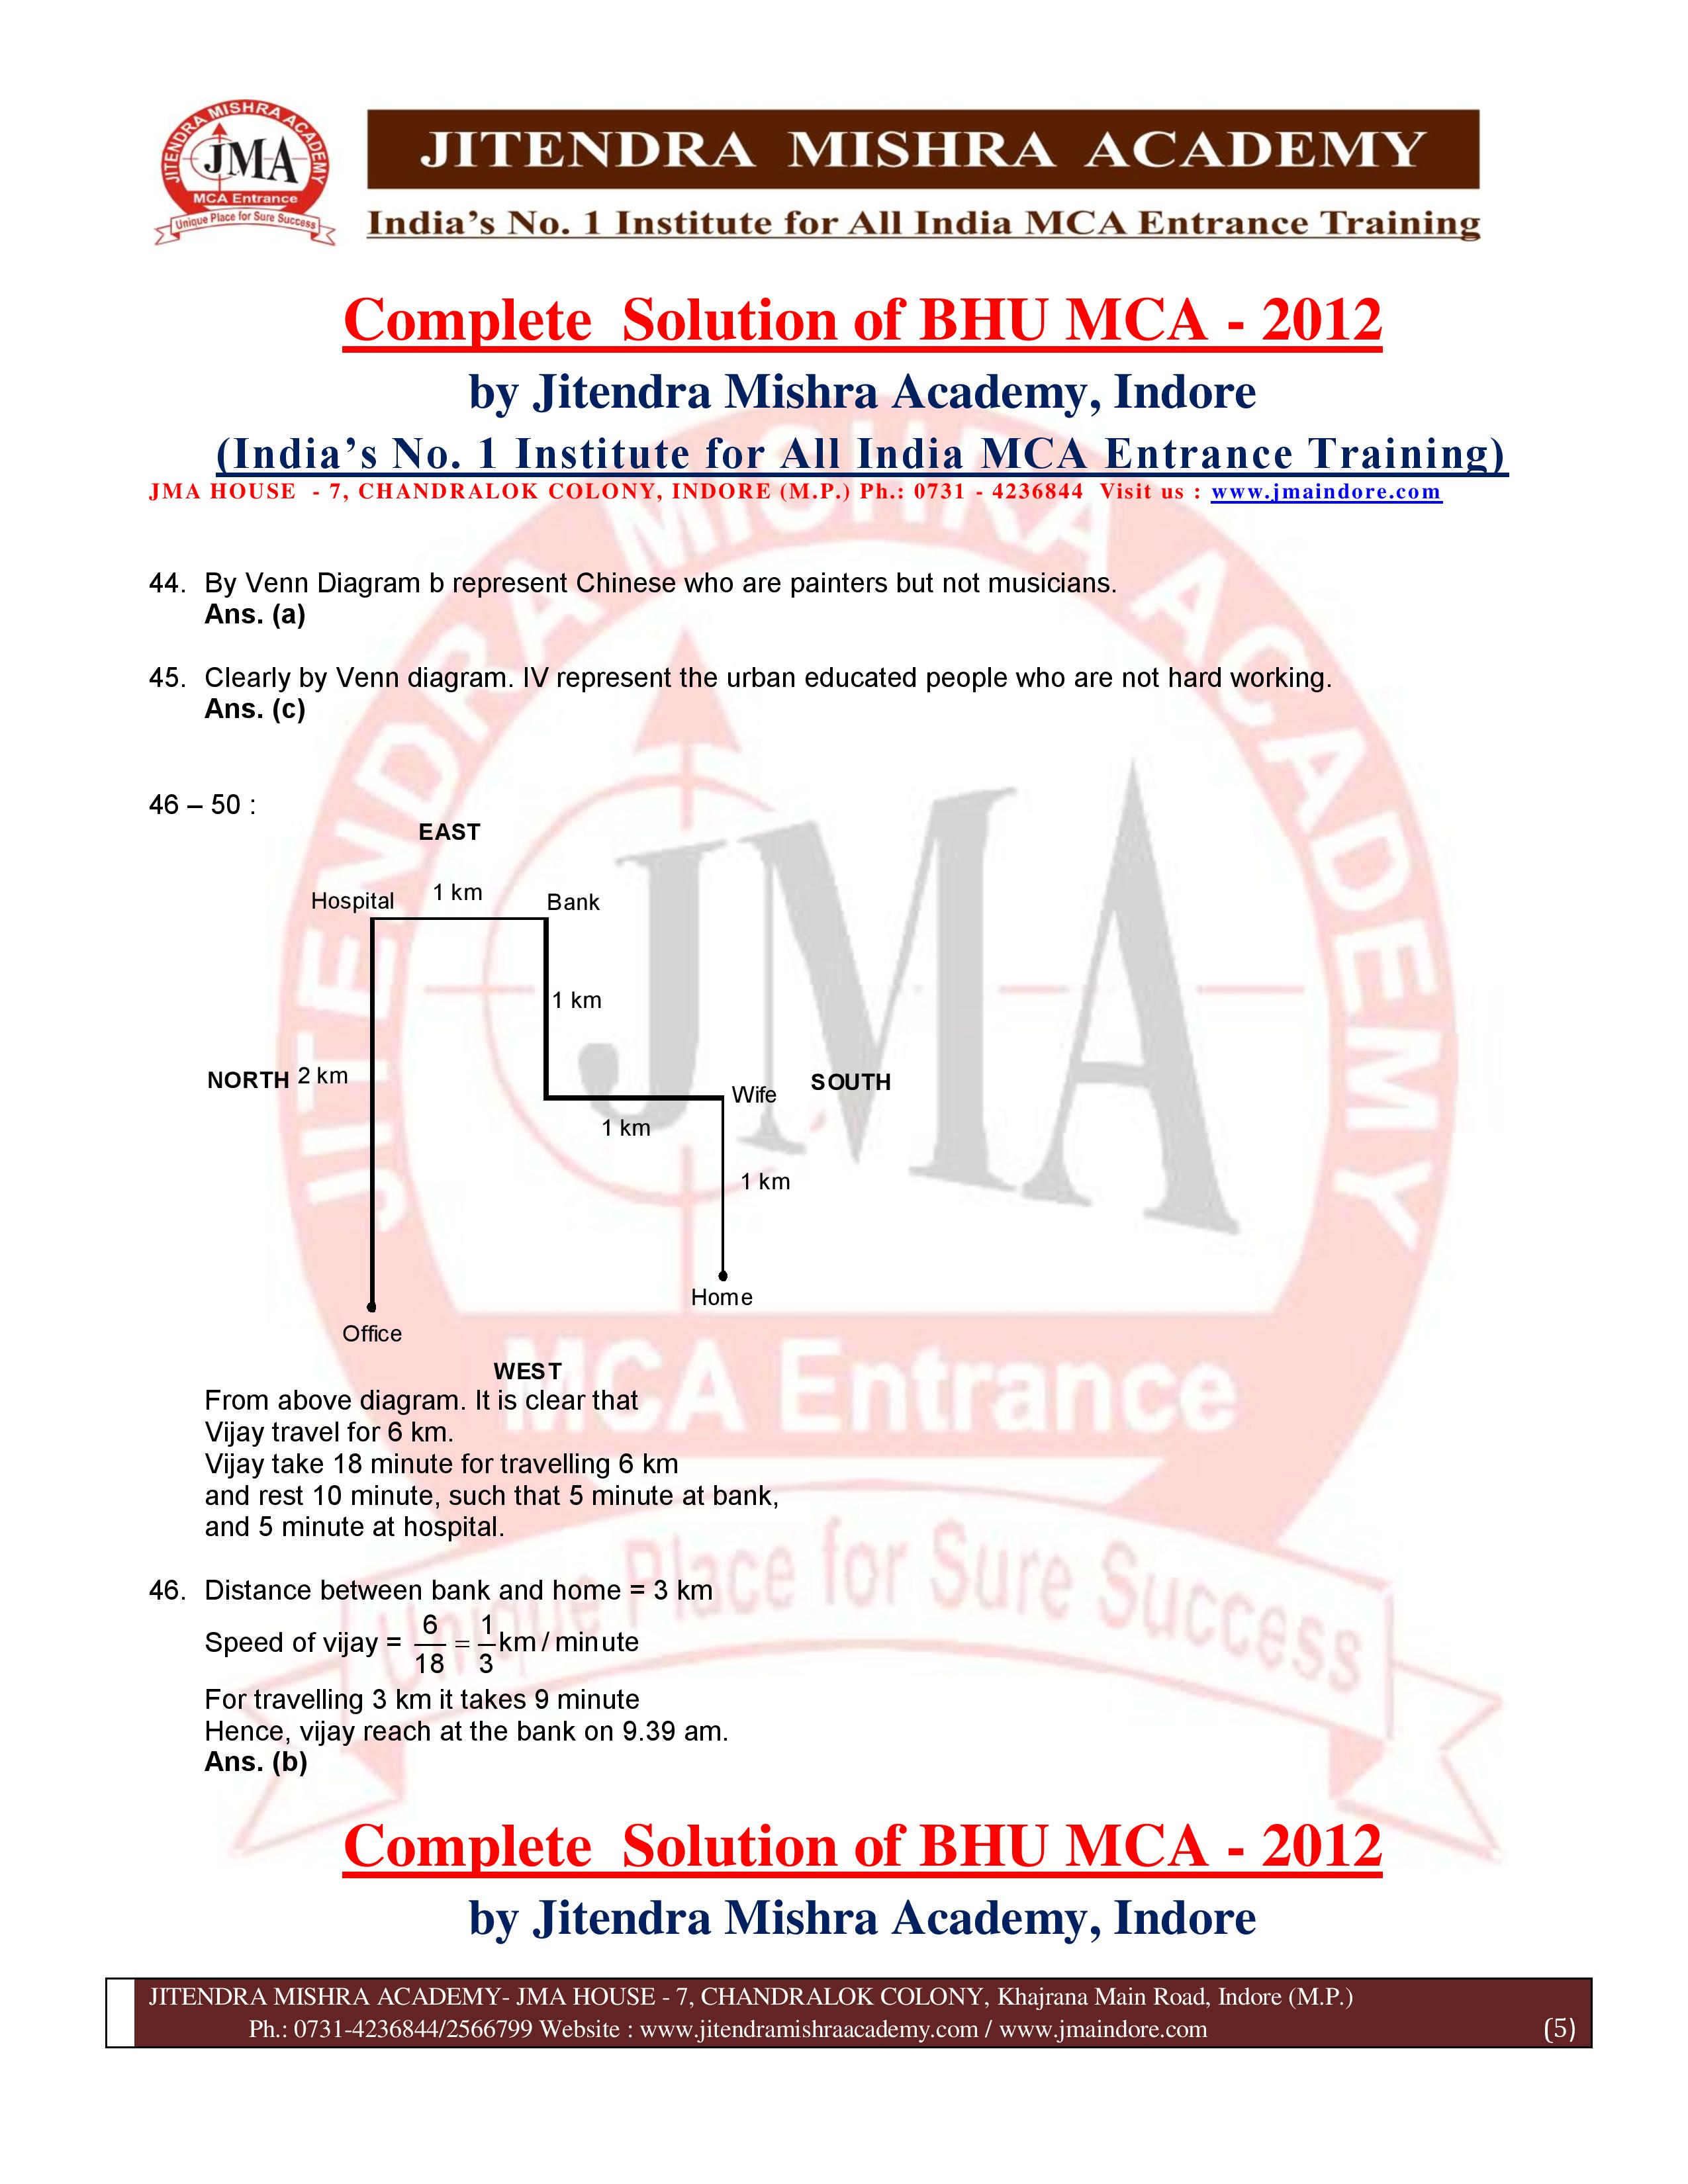 BHU 2012 SOLUTION (SET - 2) (07.07.16)-page-005